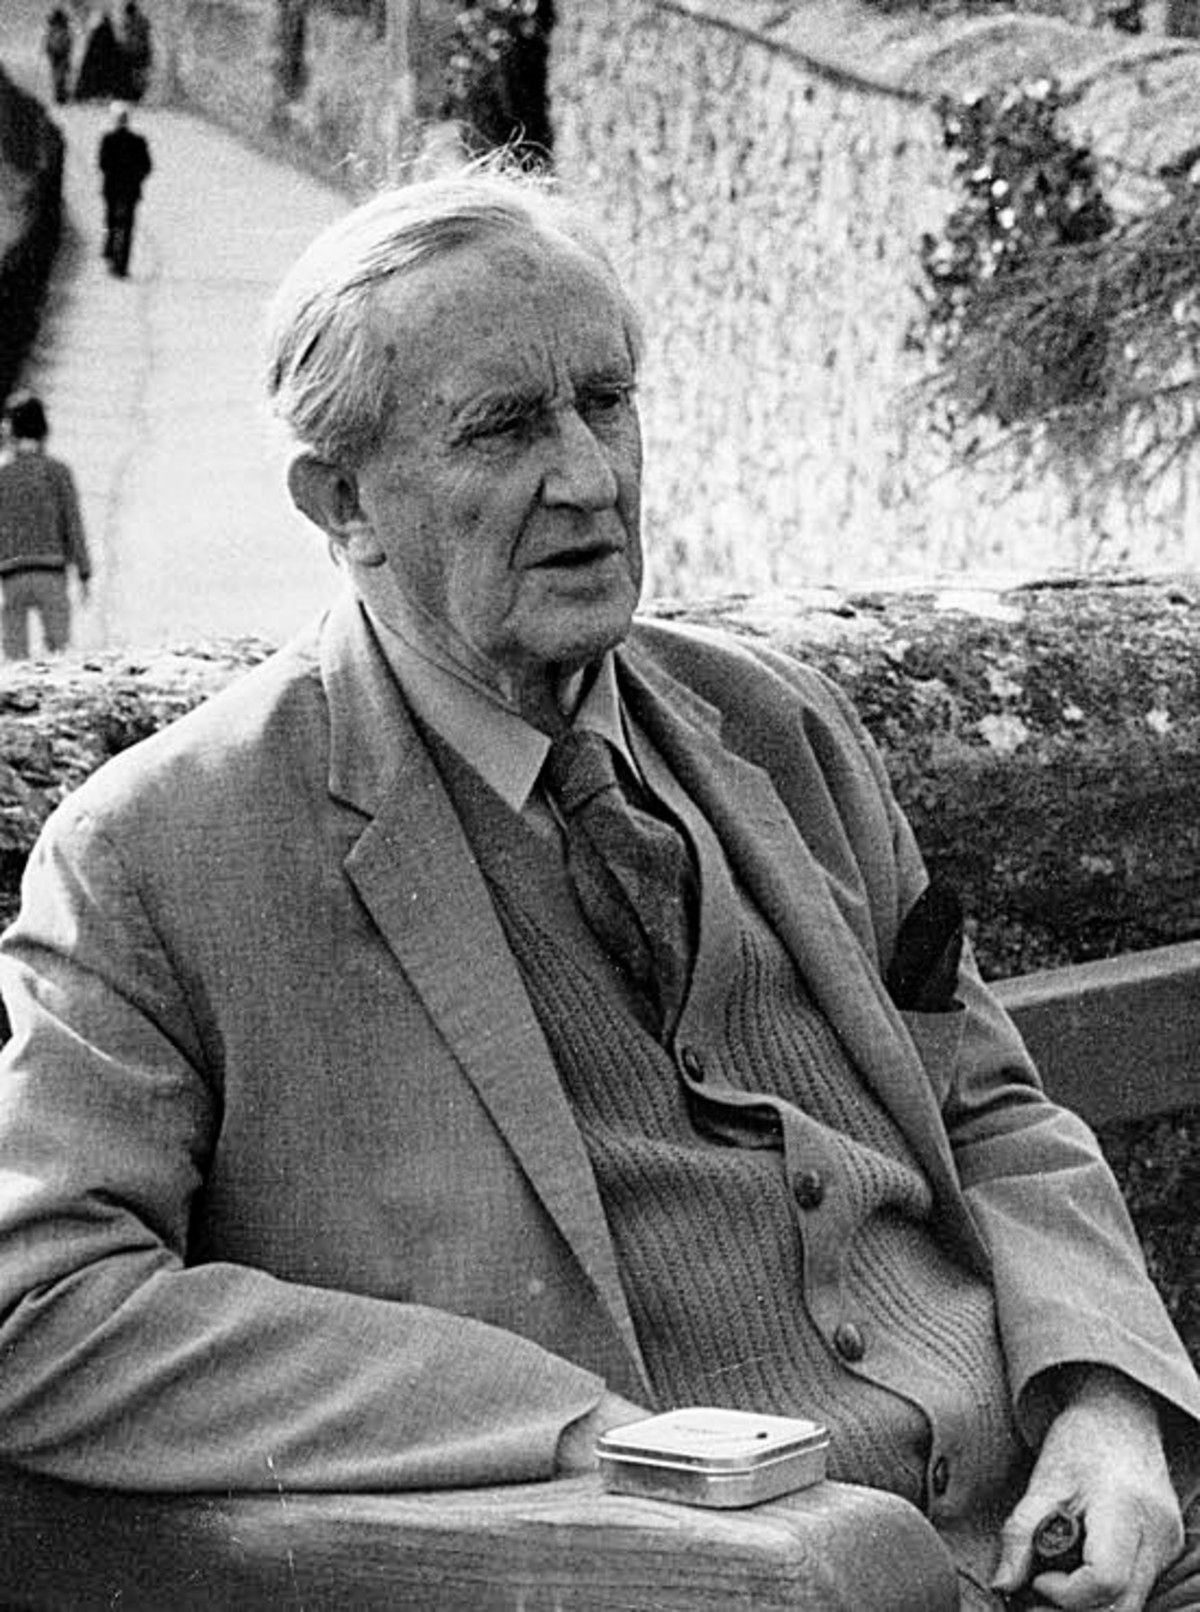 Oxford Libros Hijos Profesores J R R Tolkien At Oxford Jrr Tolkien Oxford Images